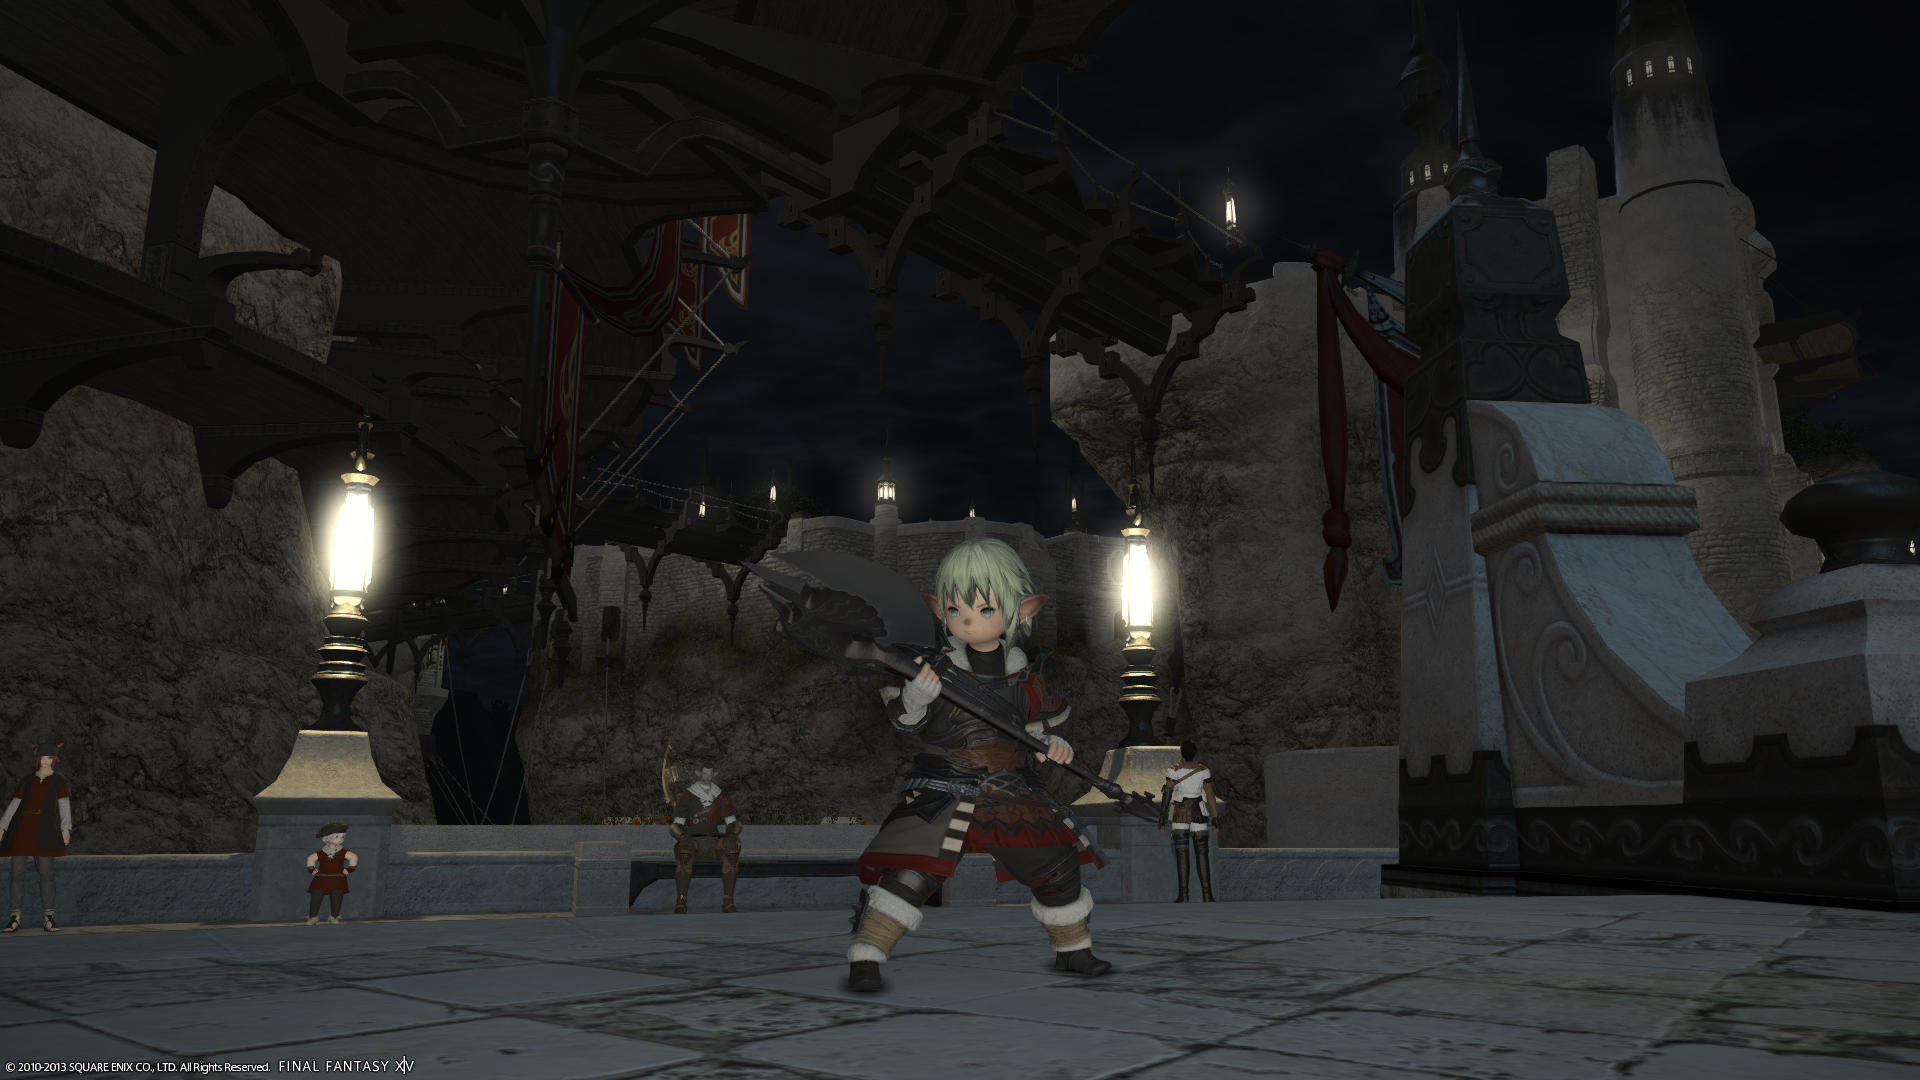 kyoji ffxiv know ears really this used shitpost with just like deal forum over month entire grind inb4 lala thread picture cute lalafell coming that fate posting soon